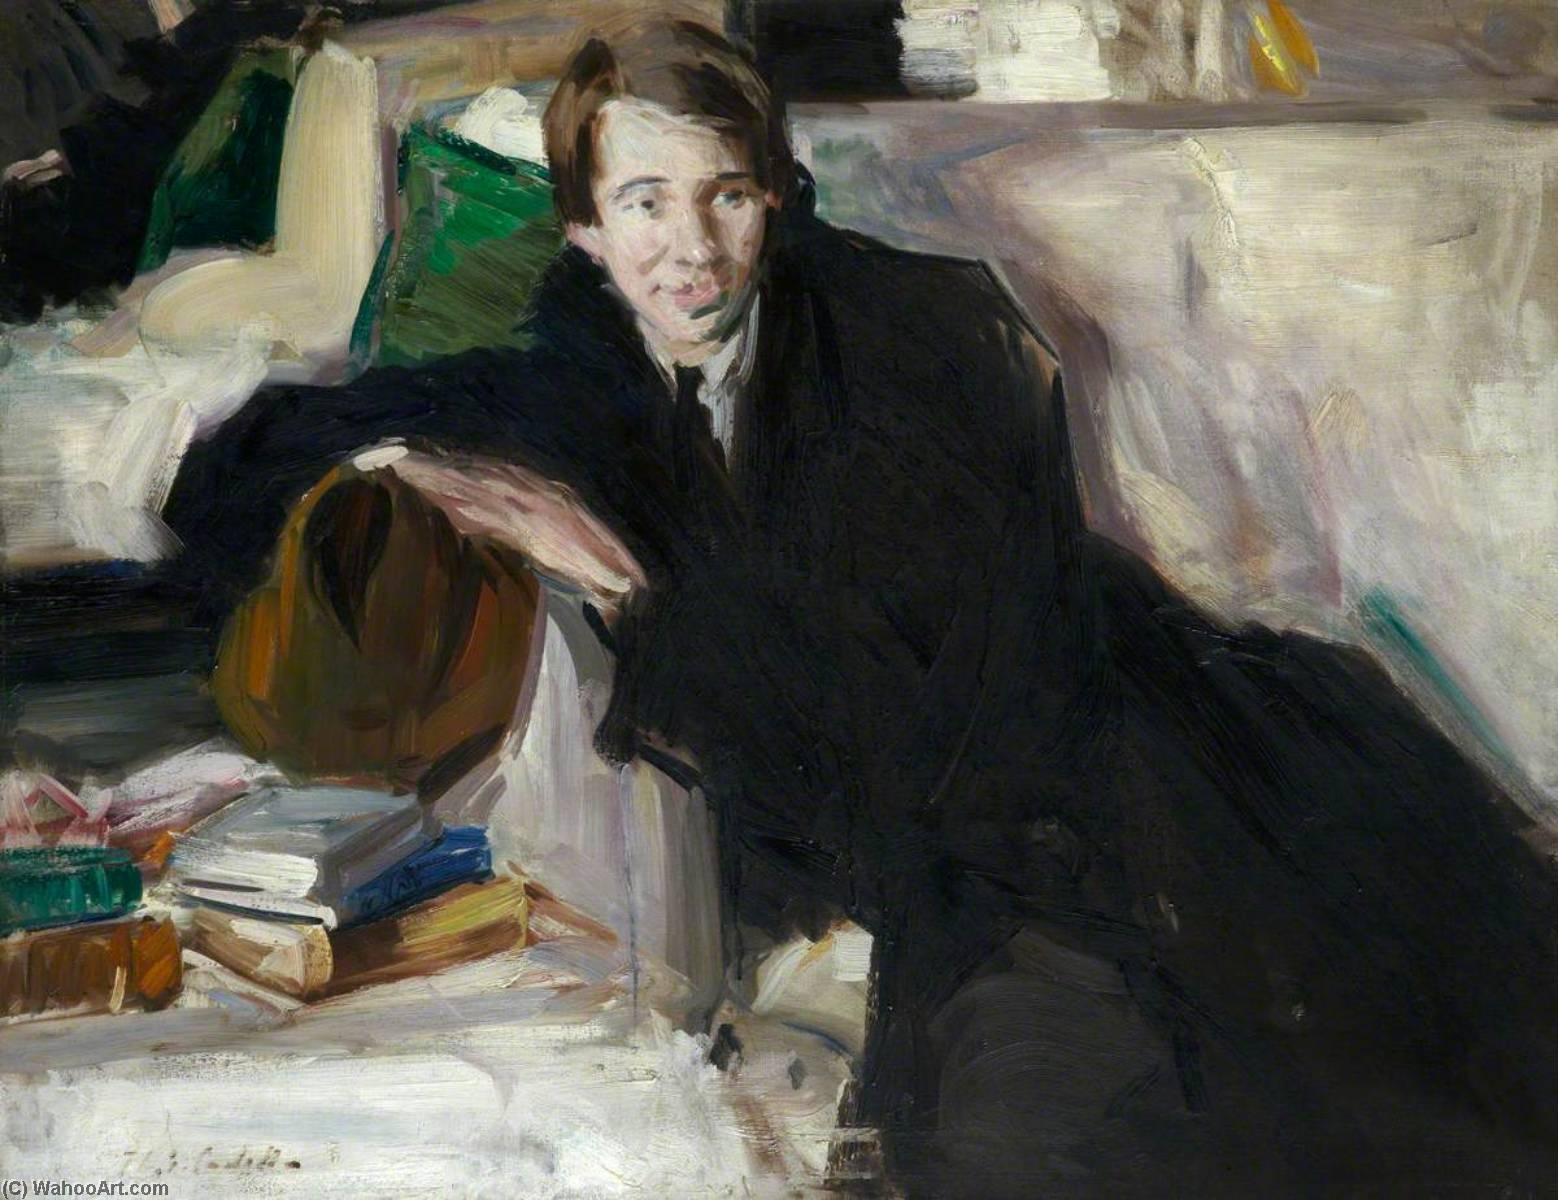 Поэт, холст, масло по Francis Campbell Boileau Cadell (1883-1937)